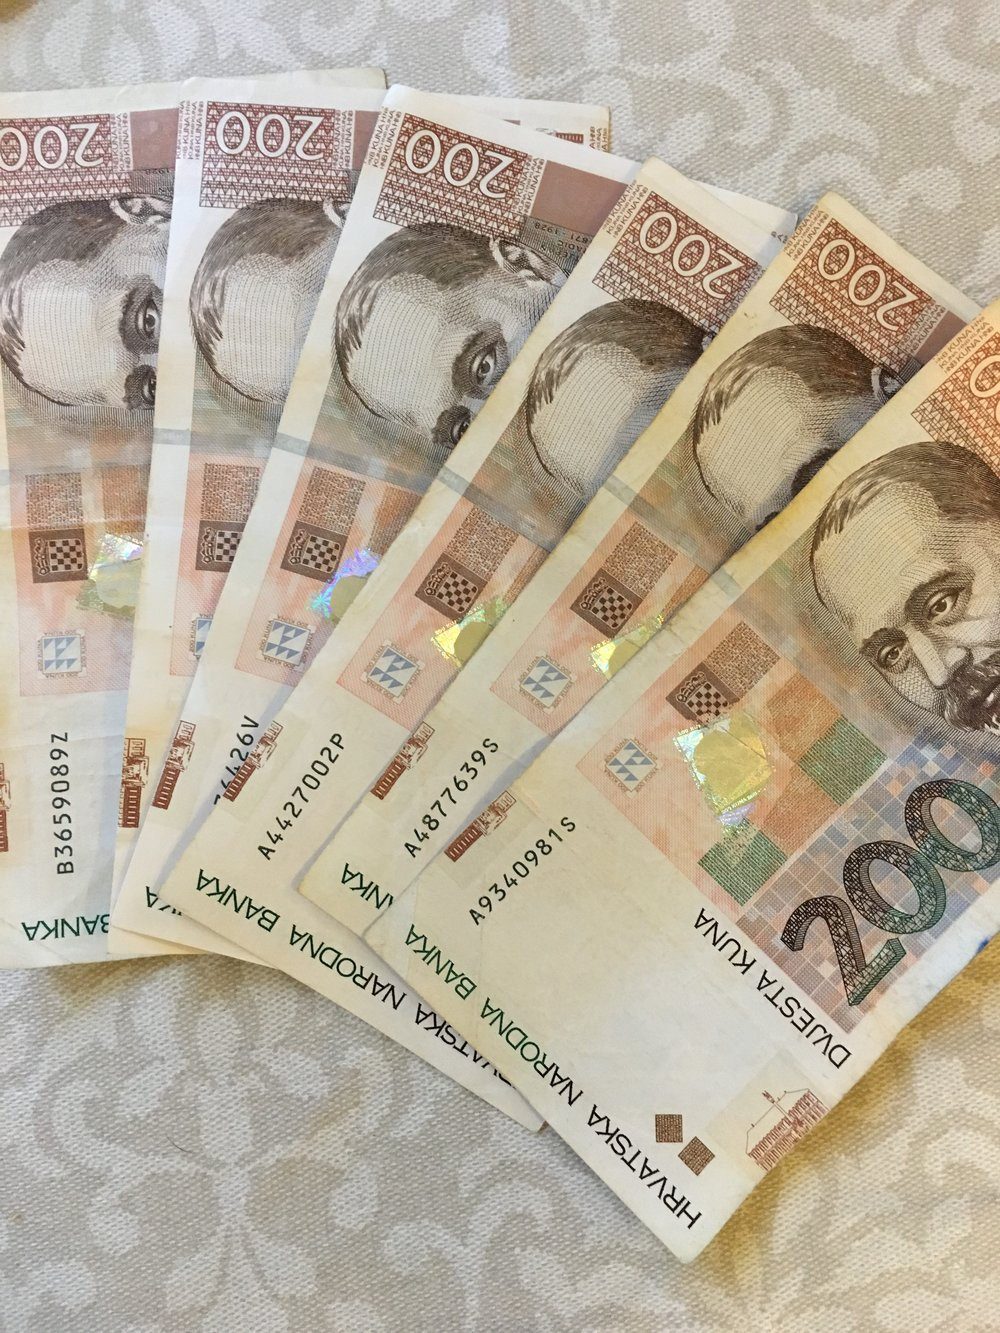 About 6 Croatian Kuna equals one US dollar.